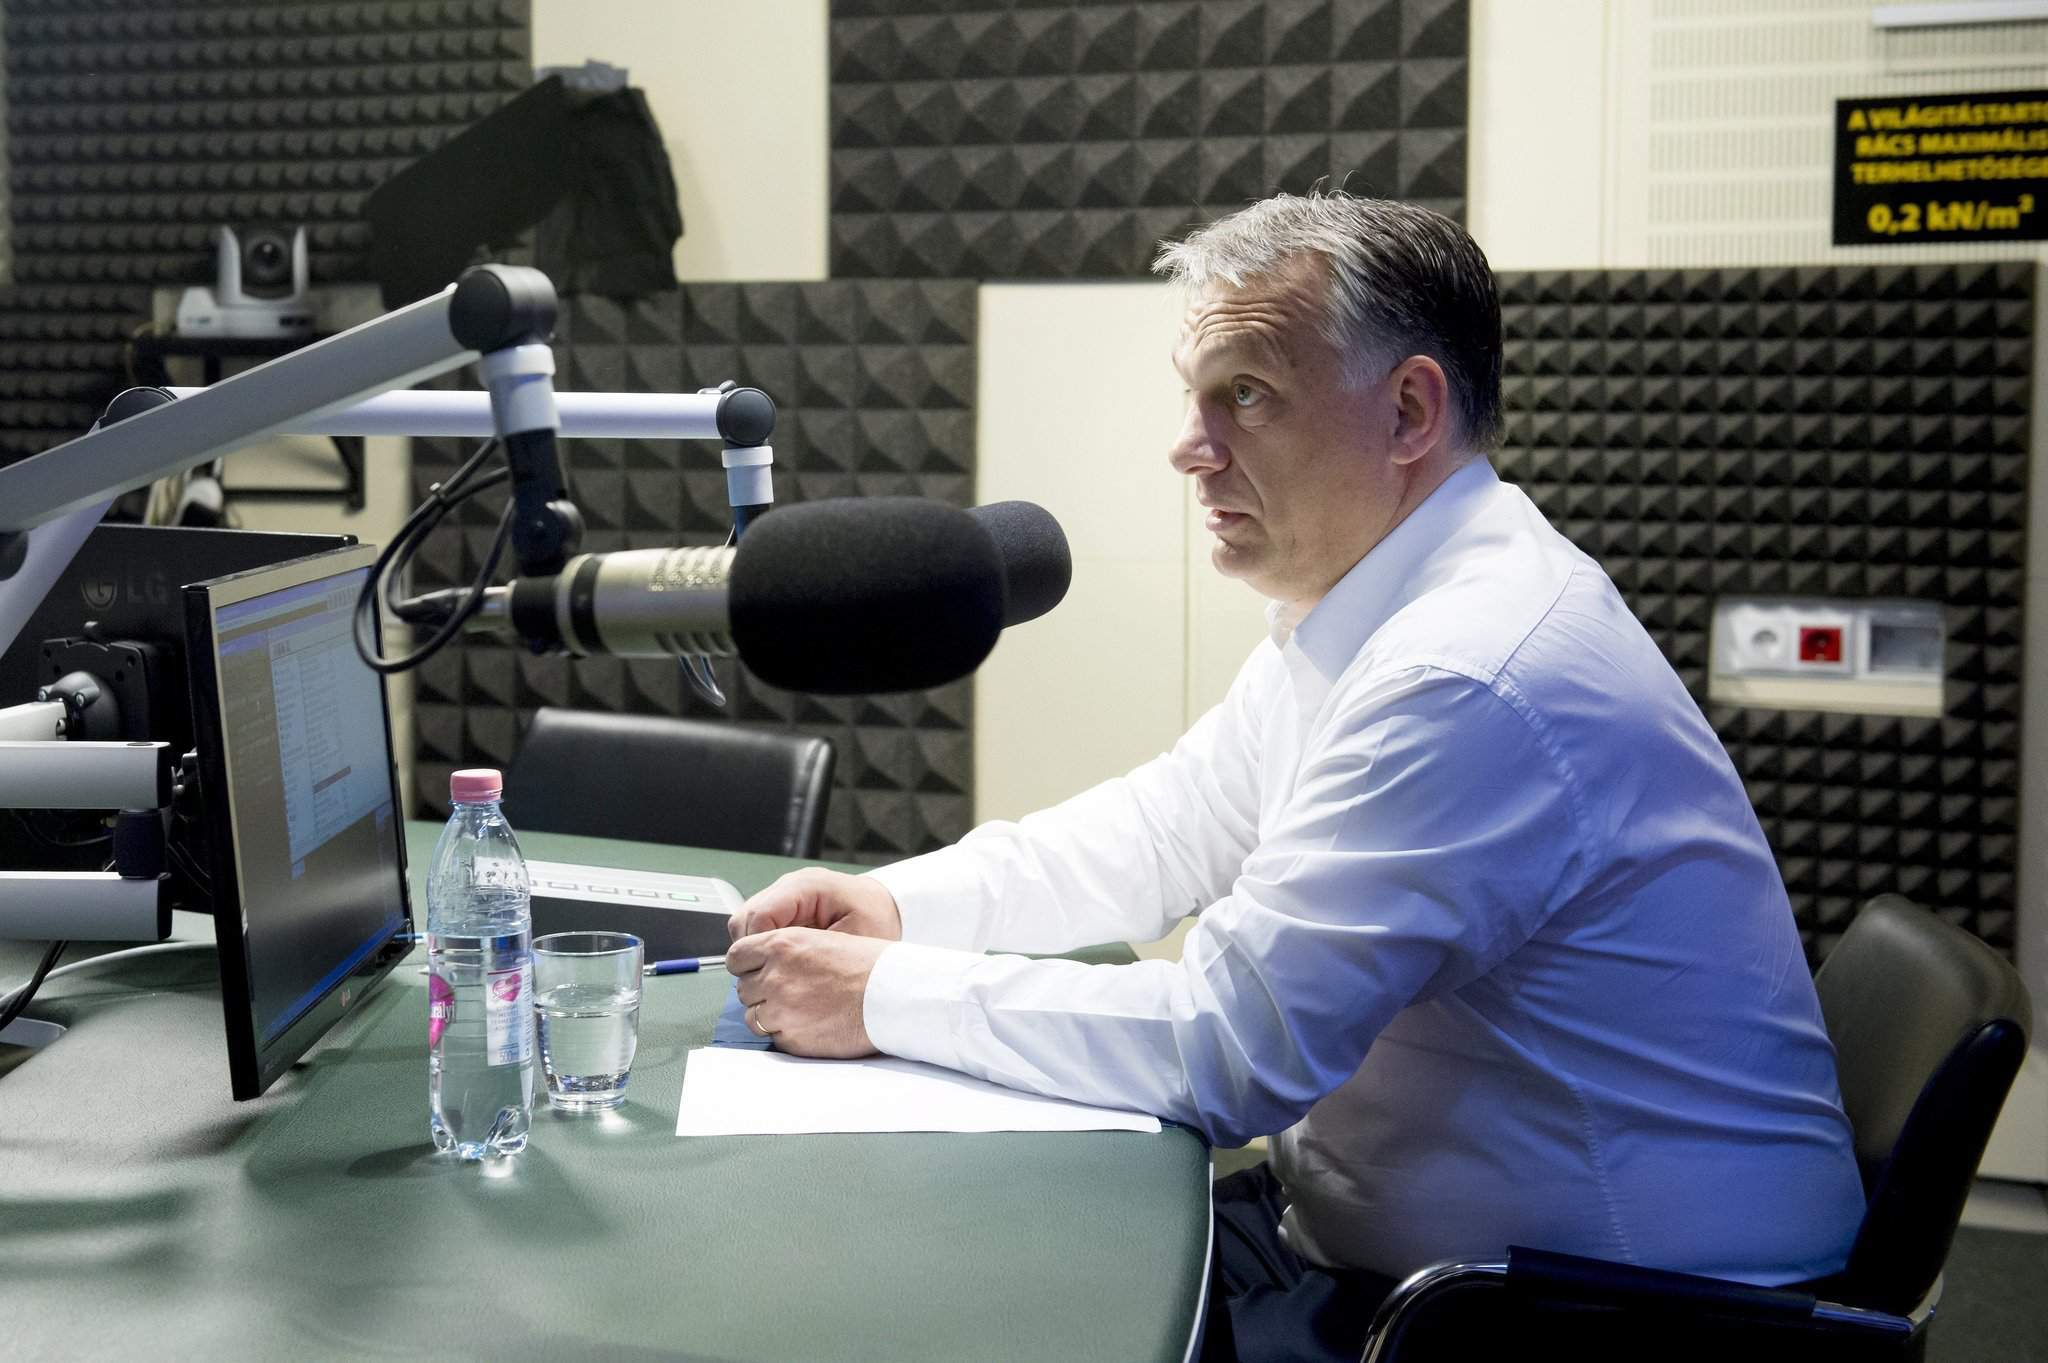 Orbán: Brussels must listen to 'voice of people'